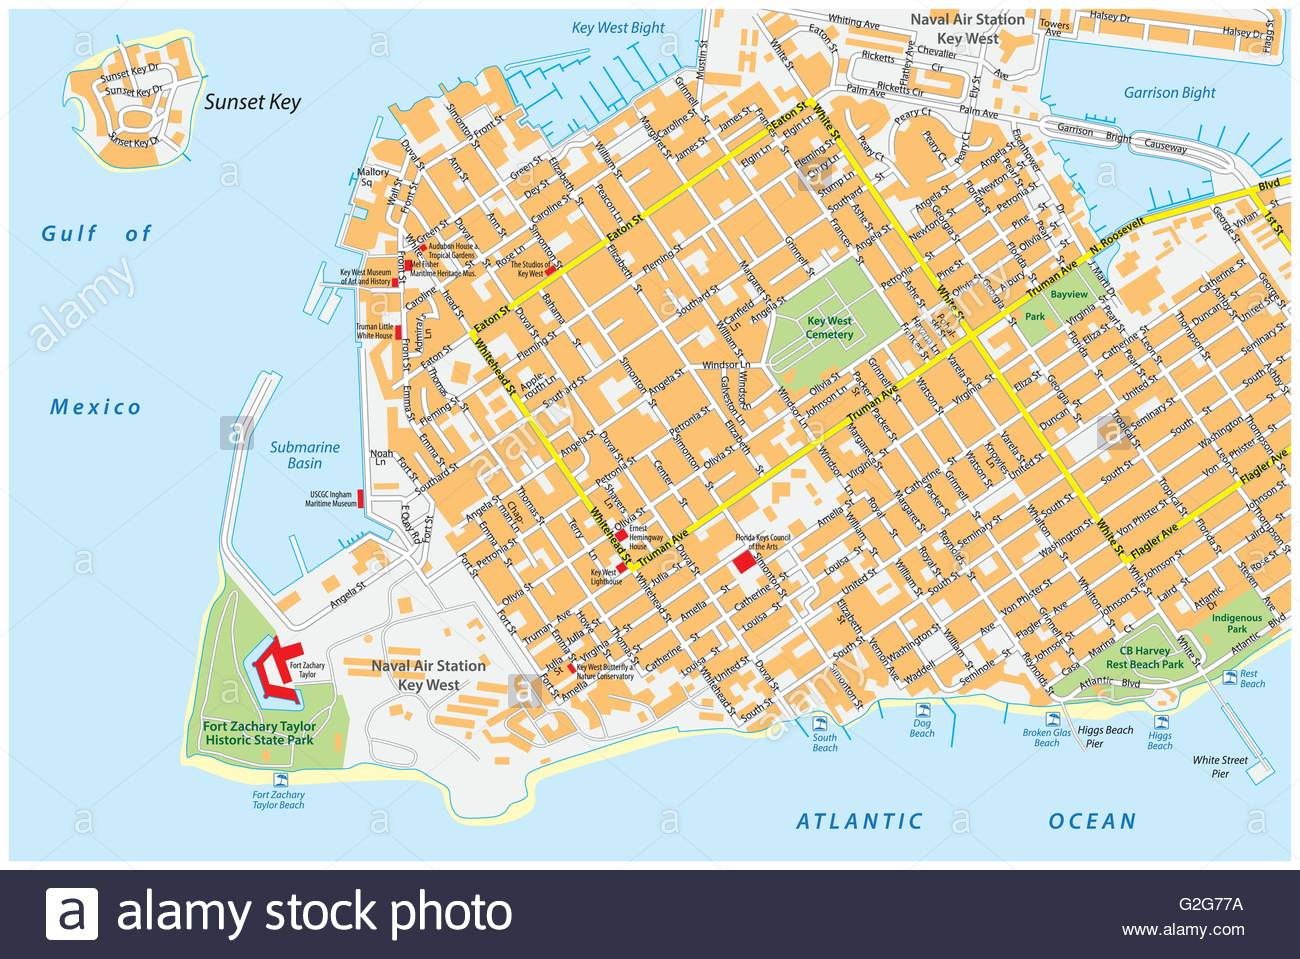 Key West Road Map With Road Names, Florida, United States Stock - Street Map Of Key West Florida